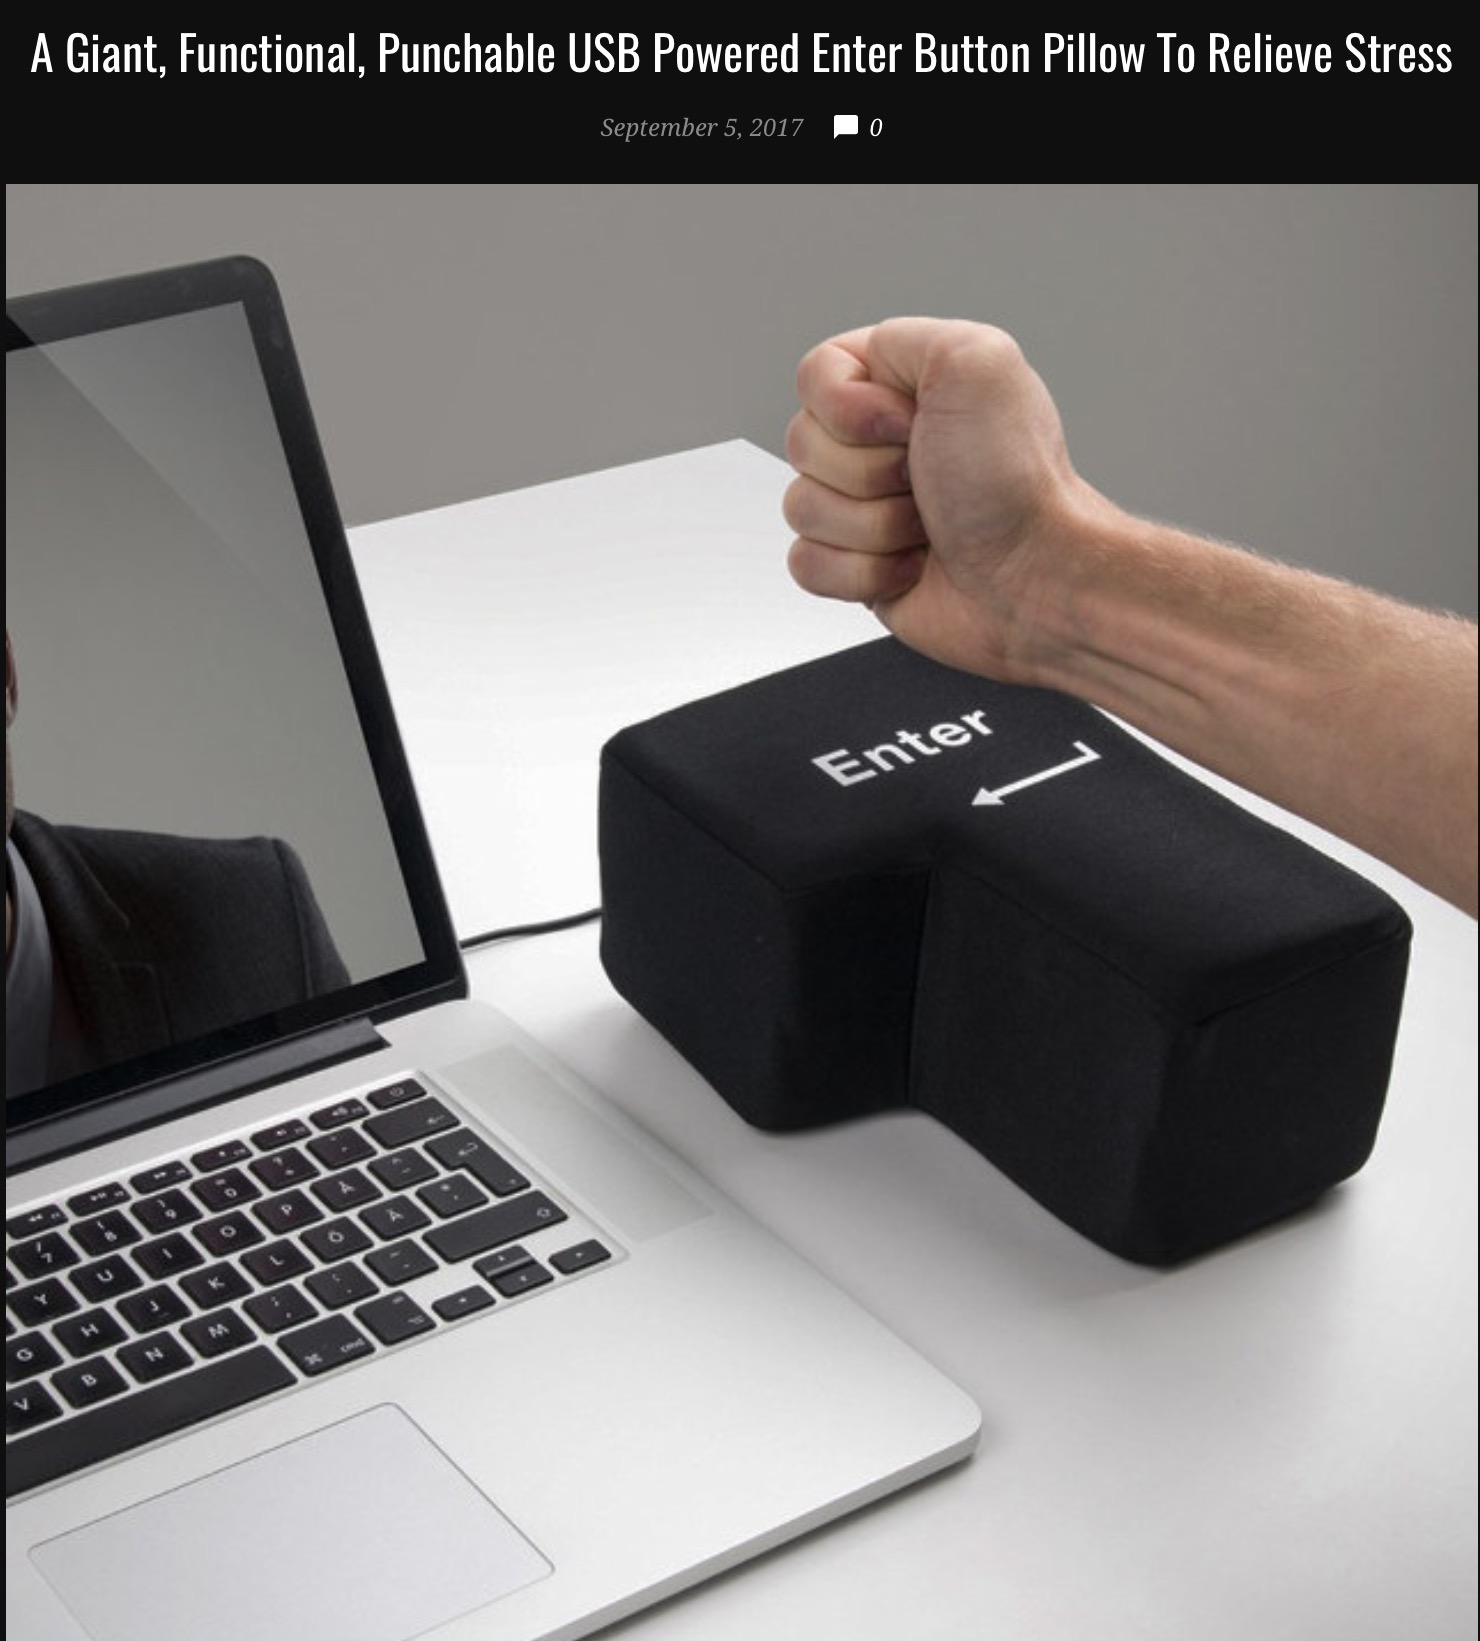 23 - Massive ENTER button stress pillow to punch on your desk.